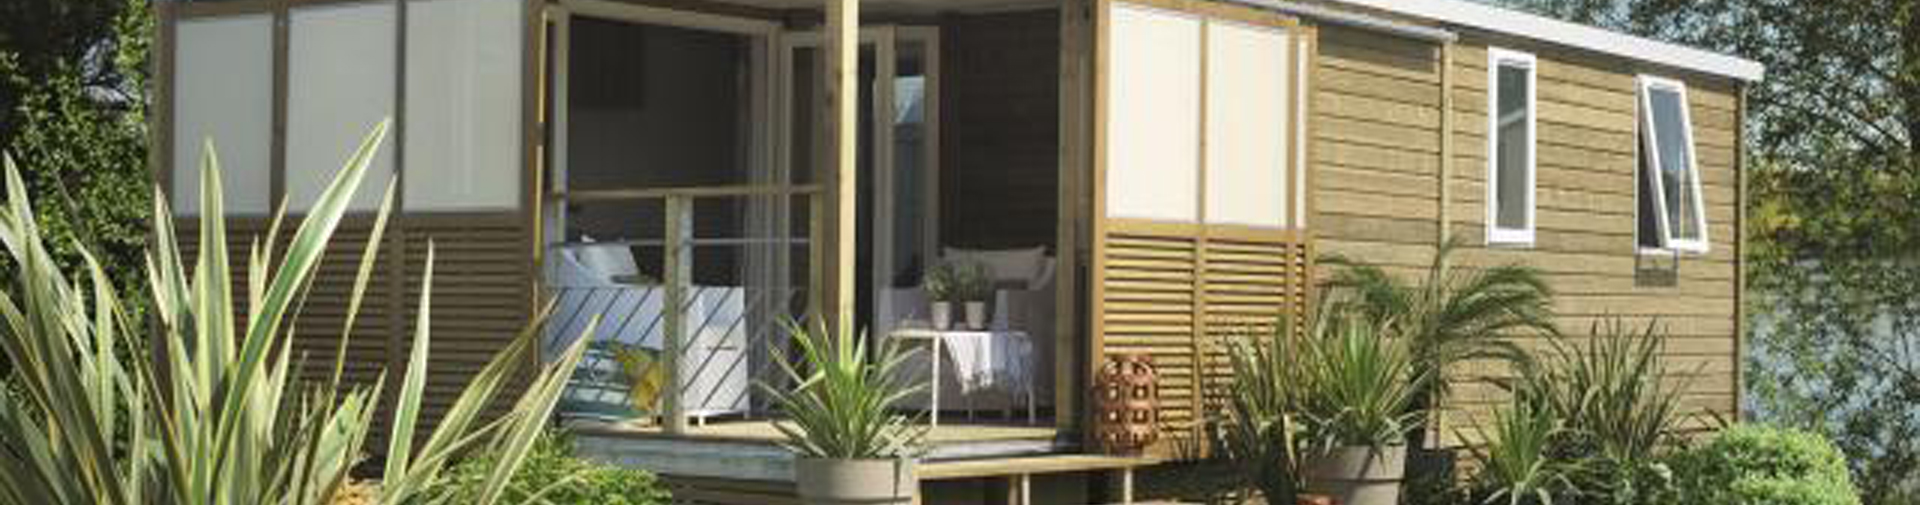 location mobil-home 3ch 6pers terrasse couverte camping ile d'Oléron